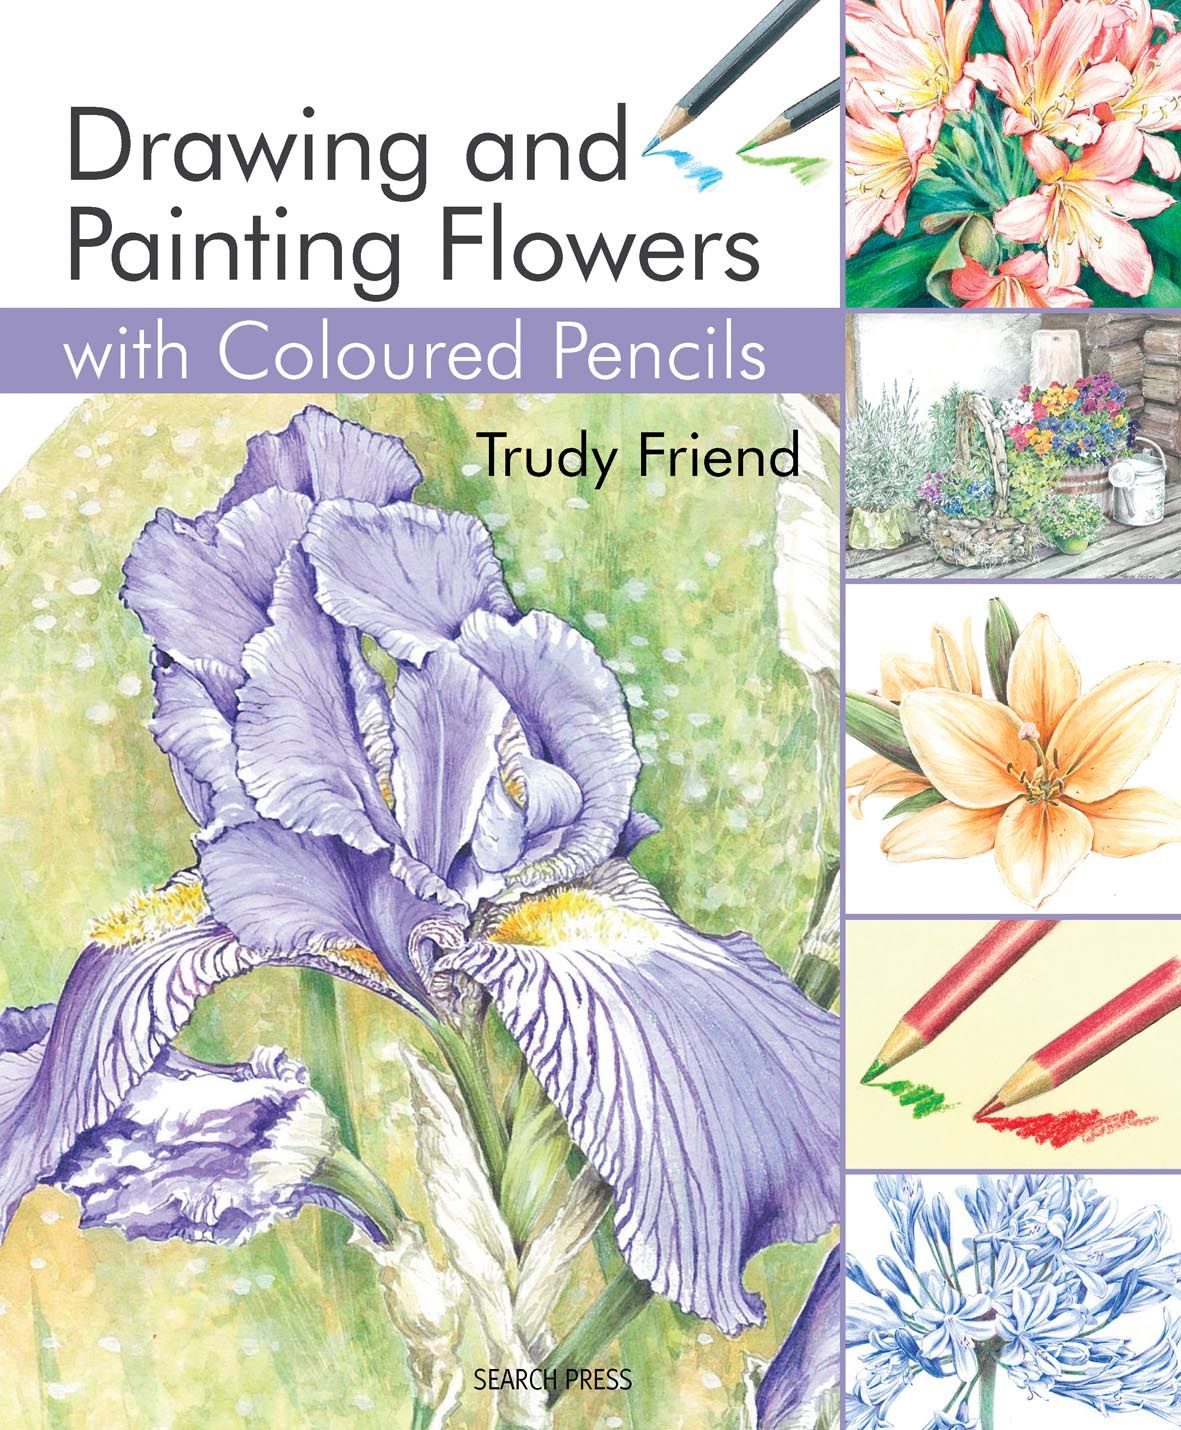 Watercolor books by search press - Trudy Friend S Watercolour Pencil Work Is Breathtaking And She Invites You To Share Her Love Of Drawing And Painting Flowers In This Book